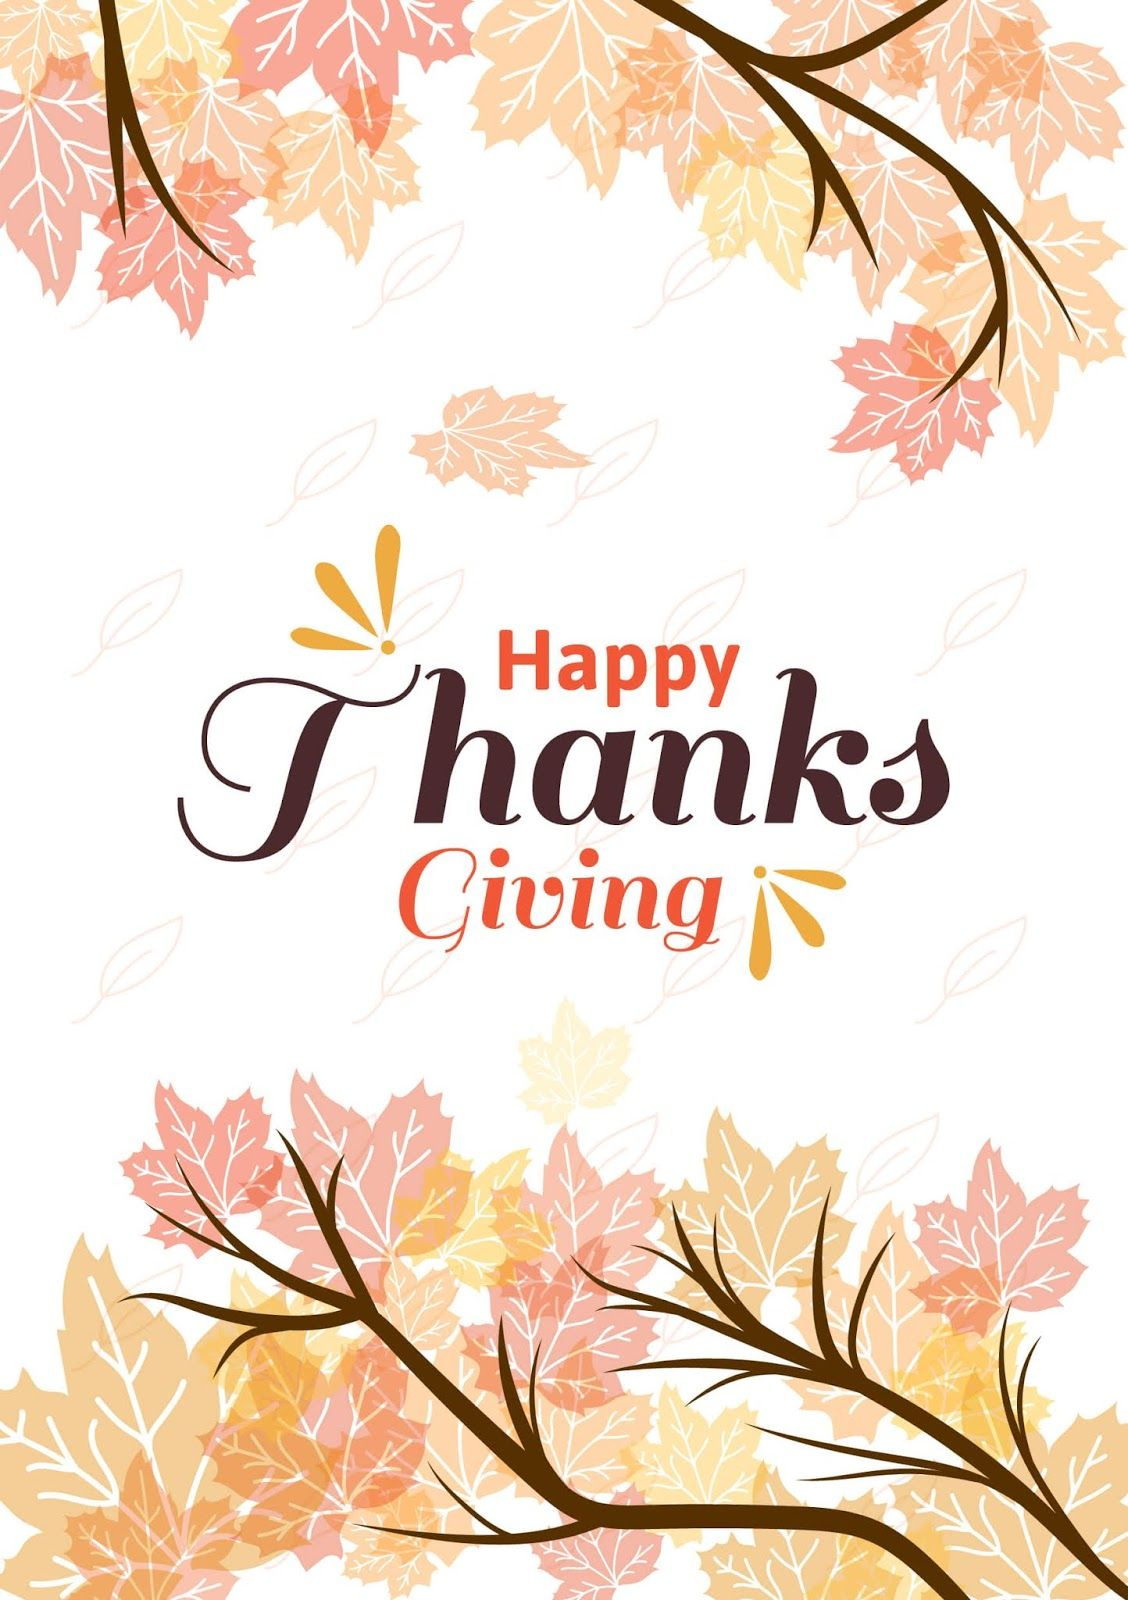 free thanksgiving cards happy thanksgiving cards - Free Thanksgiving Cards